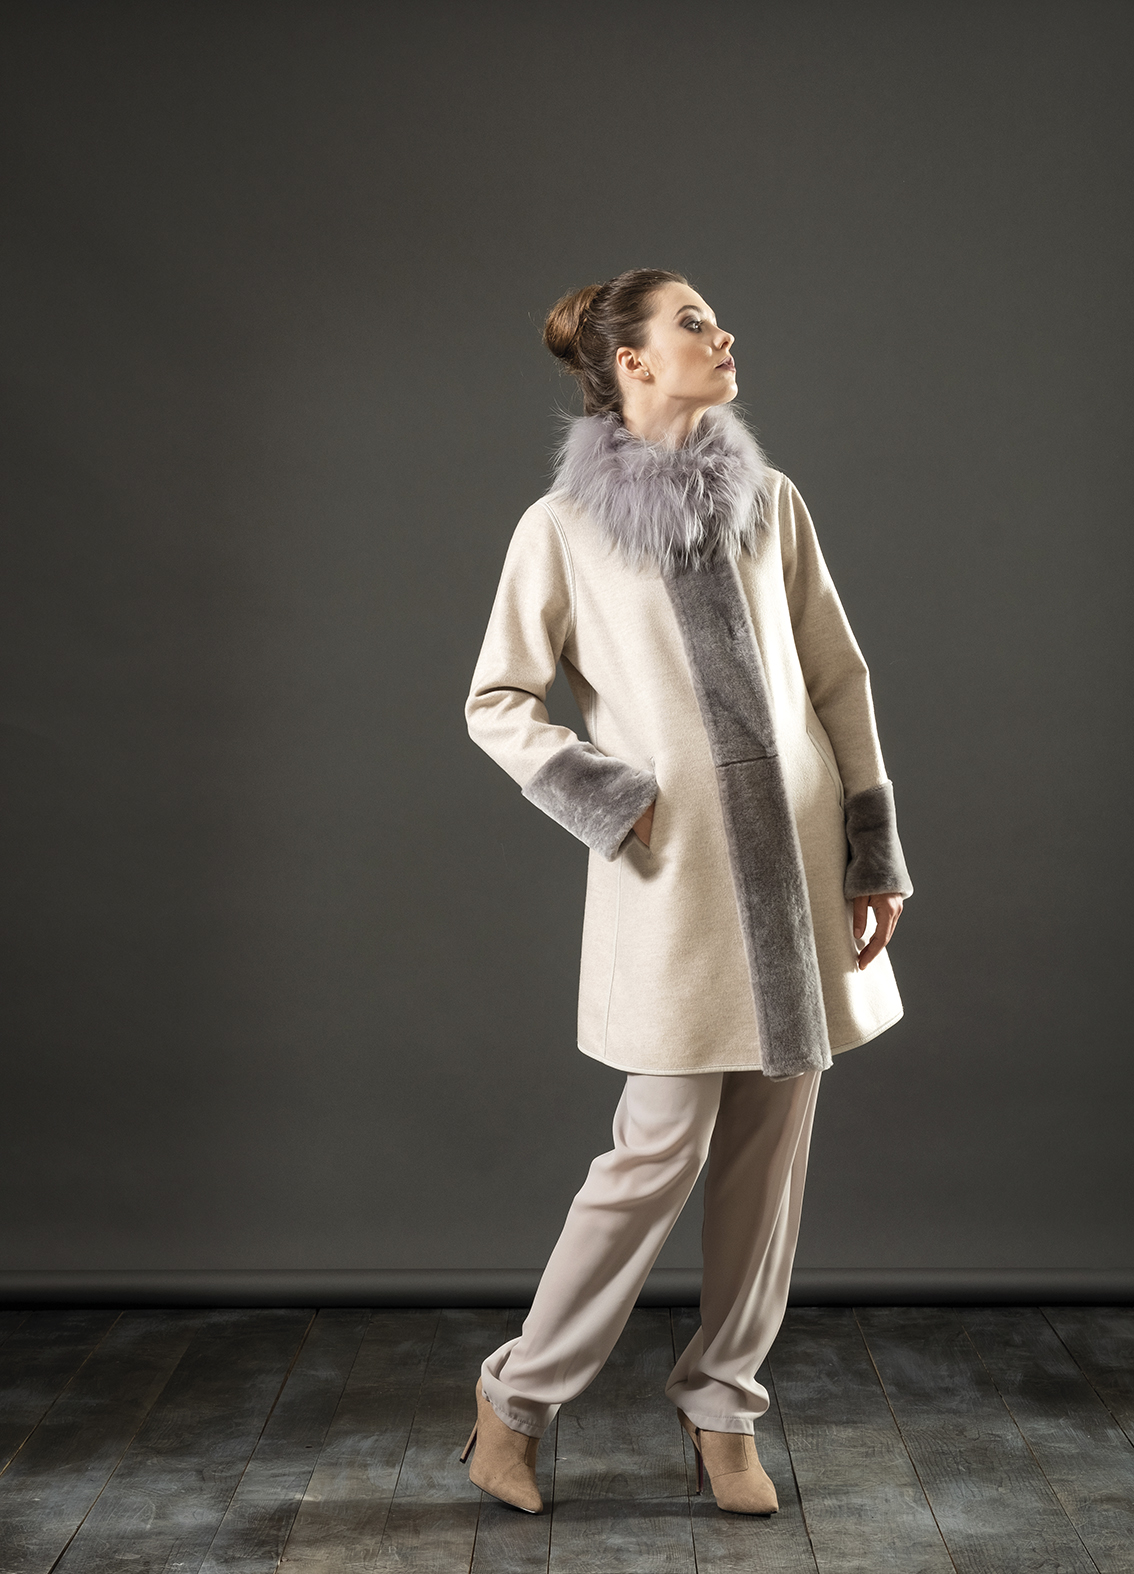 Giaccone cashmere + montone + volpe